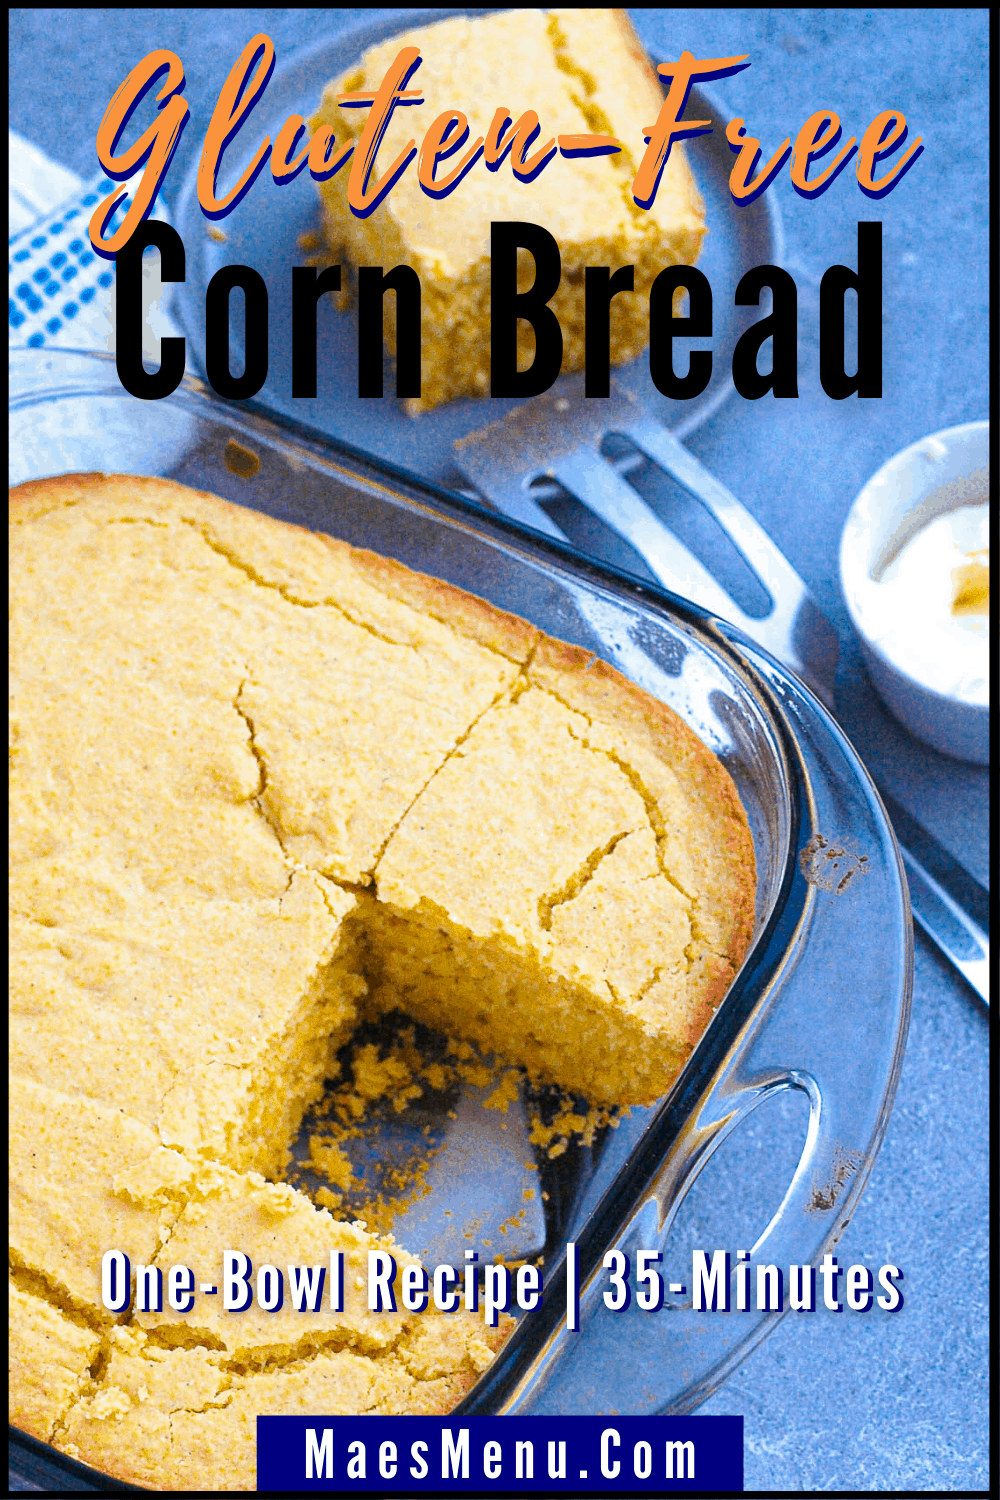 A pinterest pin for gluten-free cornbread with an overhead shot of gluten-free bread in a clear pan